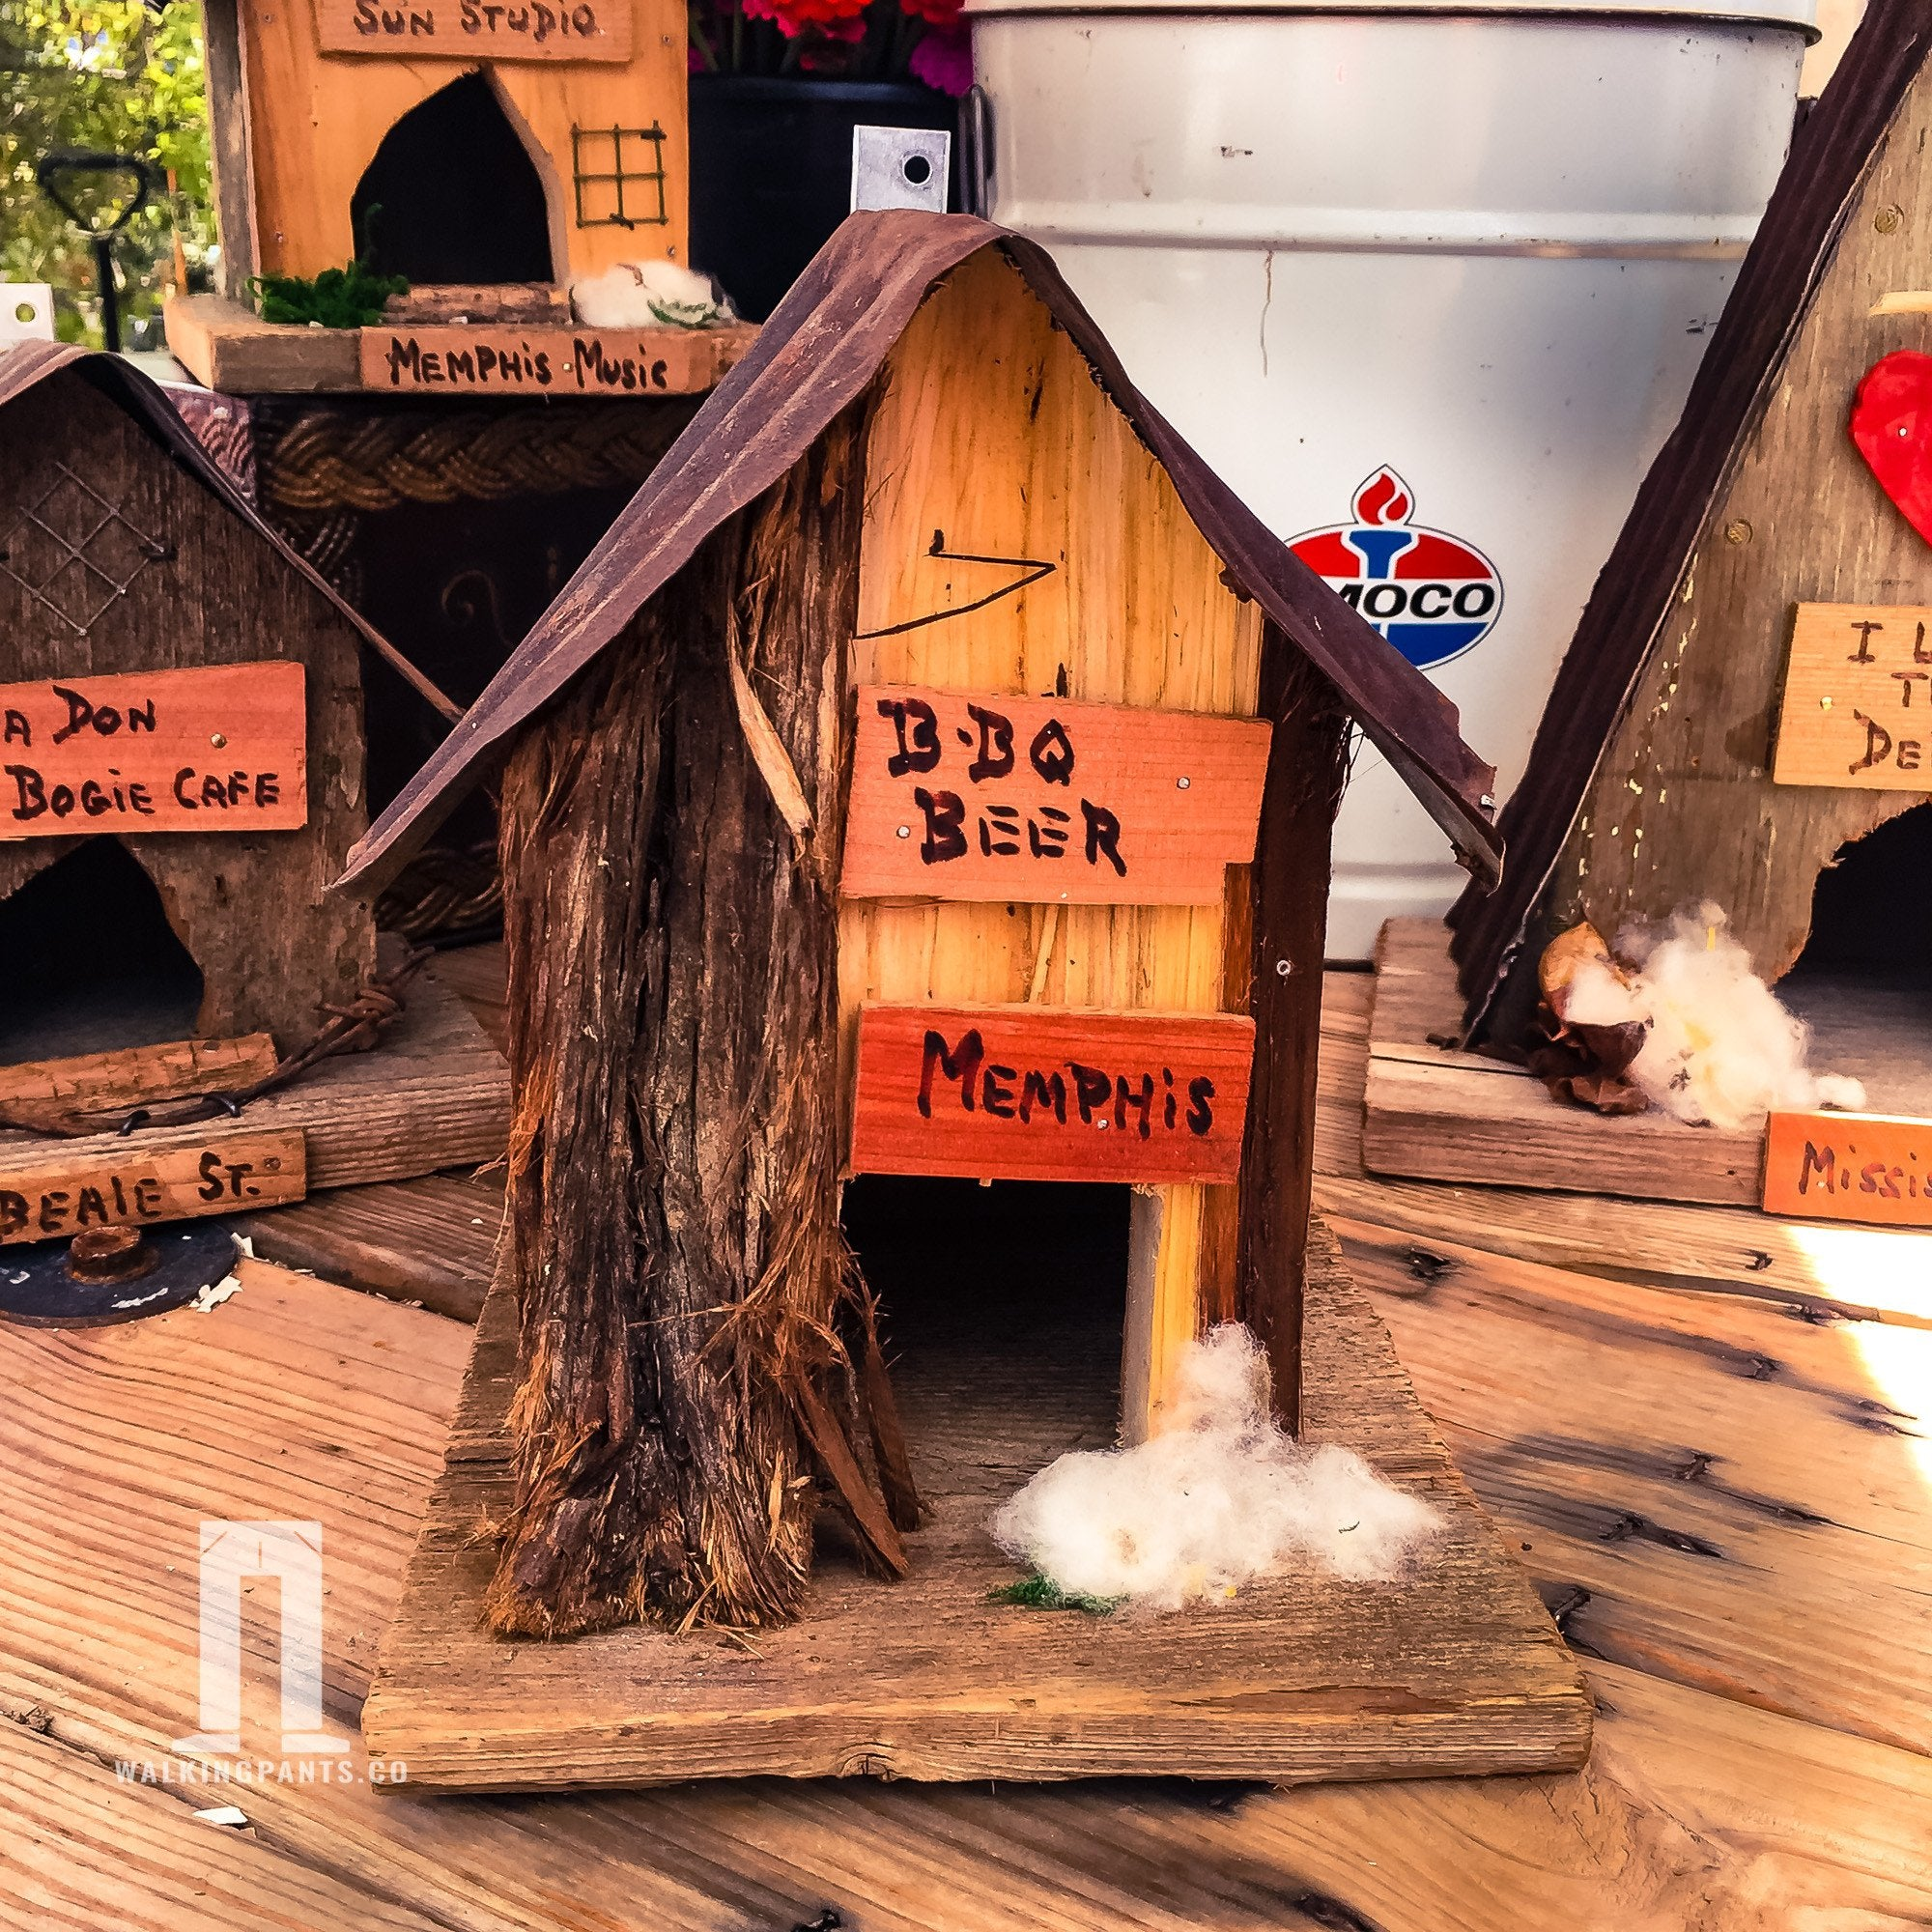 BBQ and Memphis Rustic Juke Joint Birdhouse - Walking Pants Curiosities